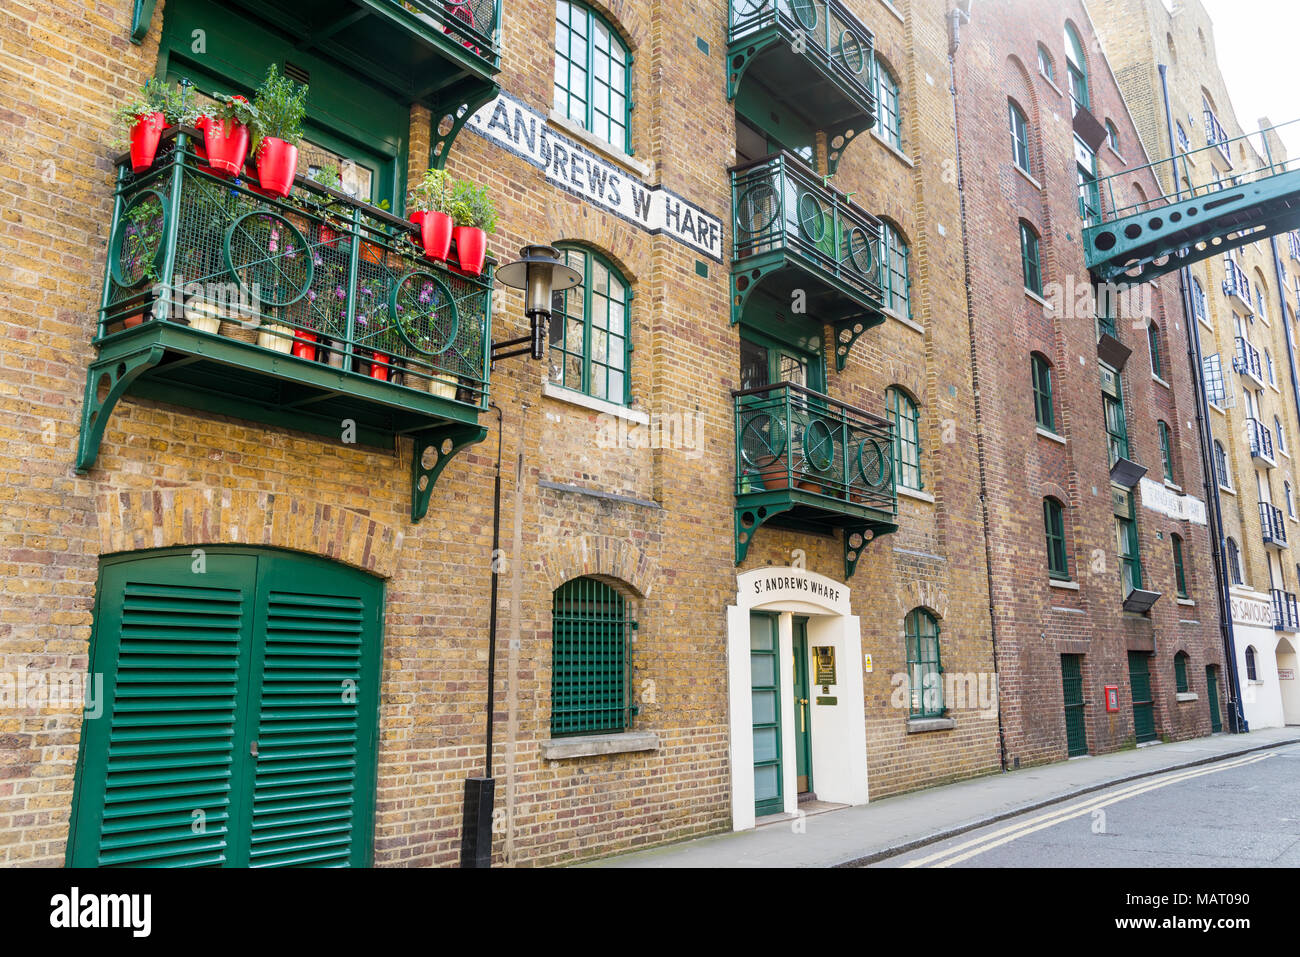 Residential apartments in St Andrews Wharf, Shad Thames, London, UK - Stock Image